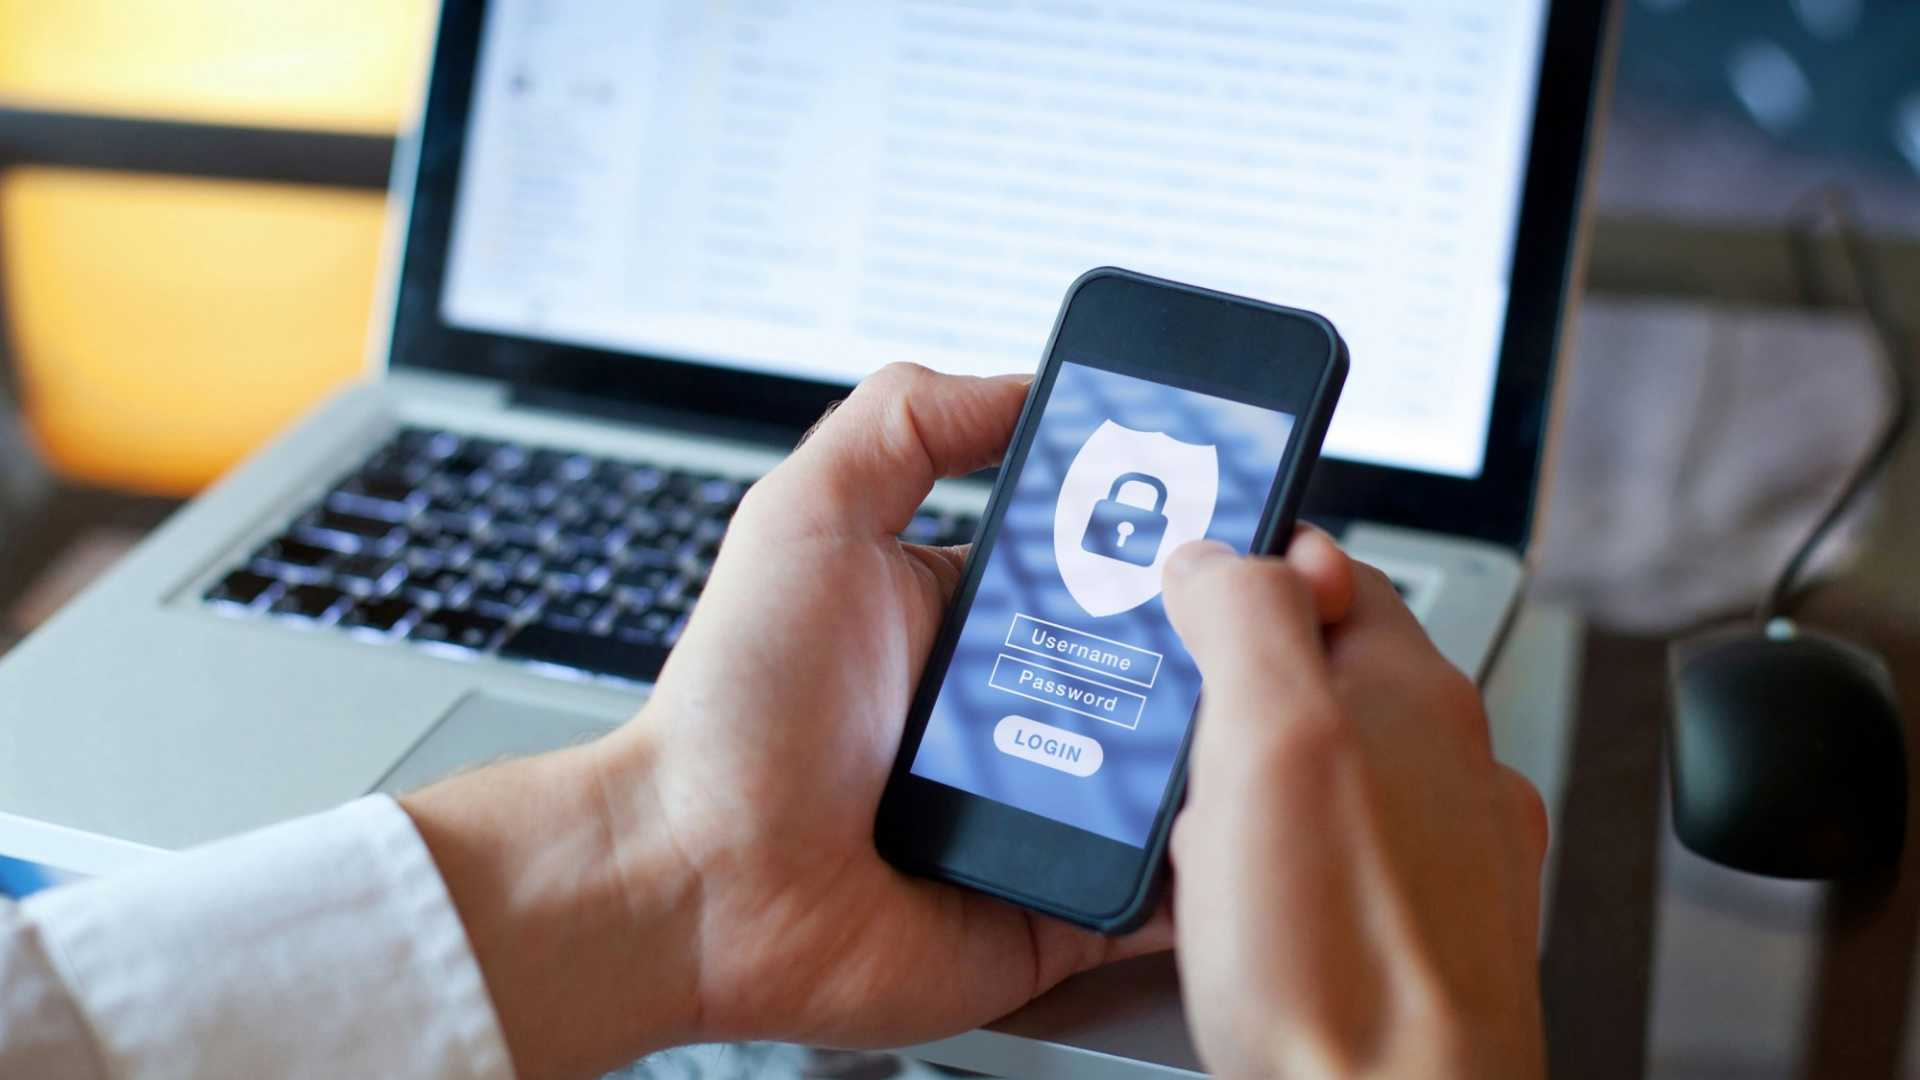 Data privacy isn't just a concern for the B2C customer. B2B customers are becoming increasingly wary of brands that don't explicitly outline and share their data privacy policies.